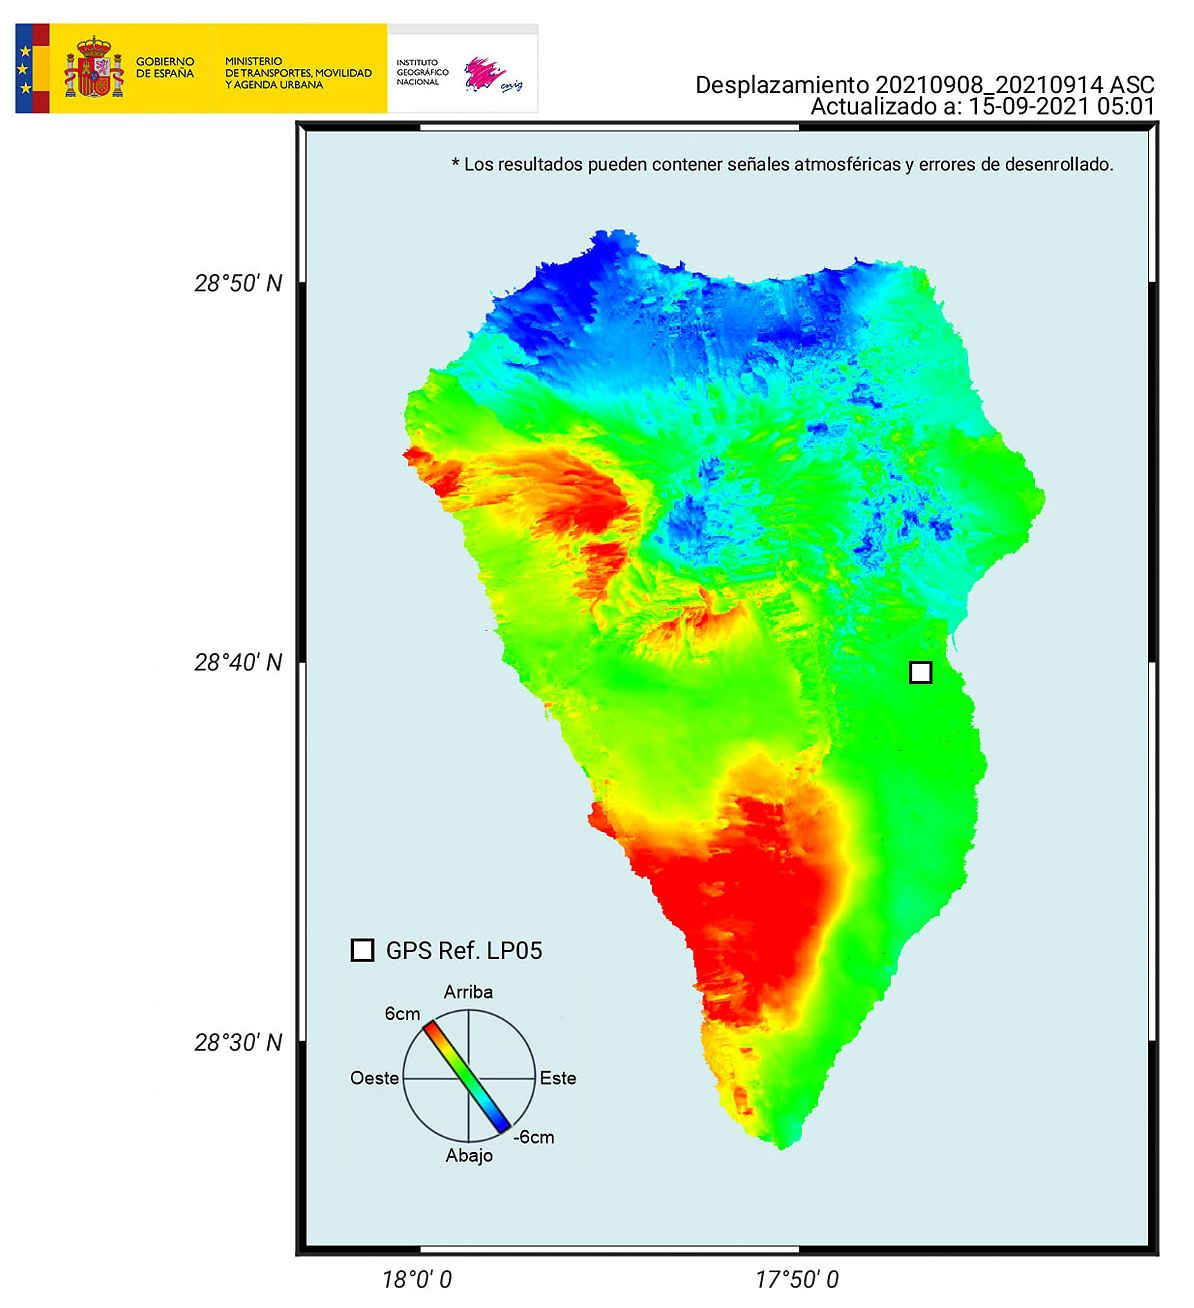 La Palma - location of earthquakes according to dates and deformation on 15.09.2021 - Doc. IGNes